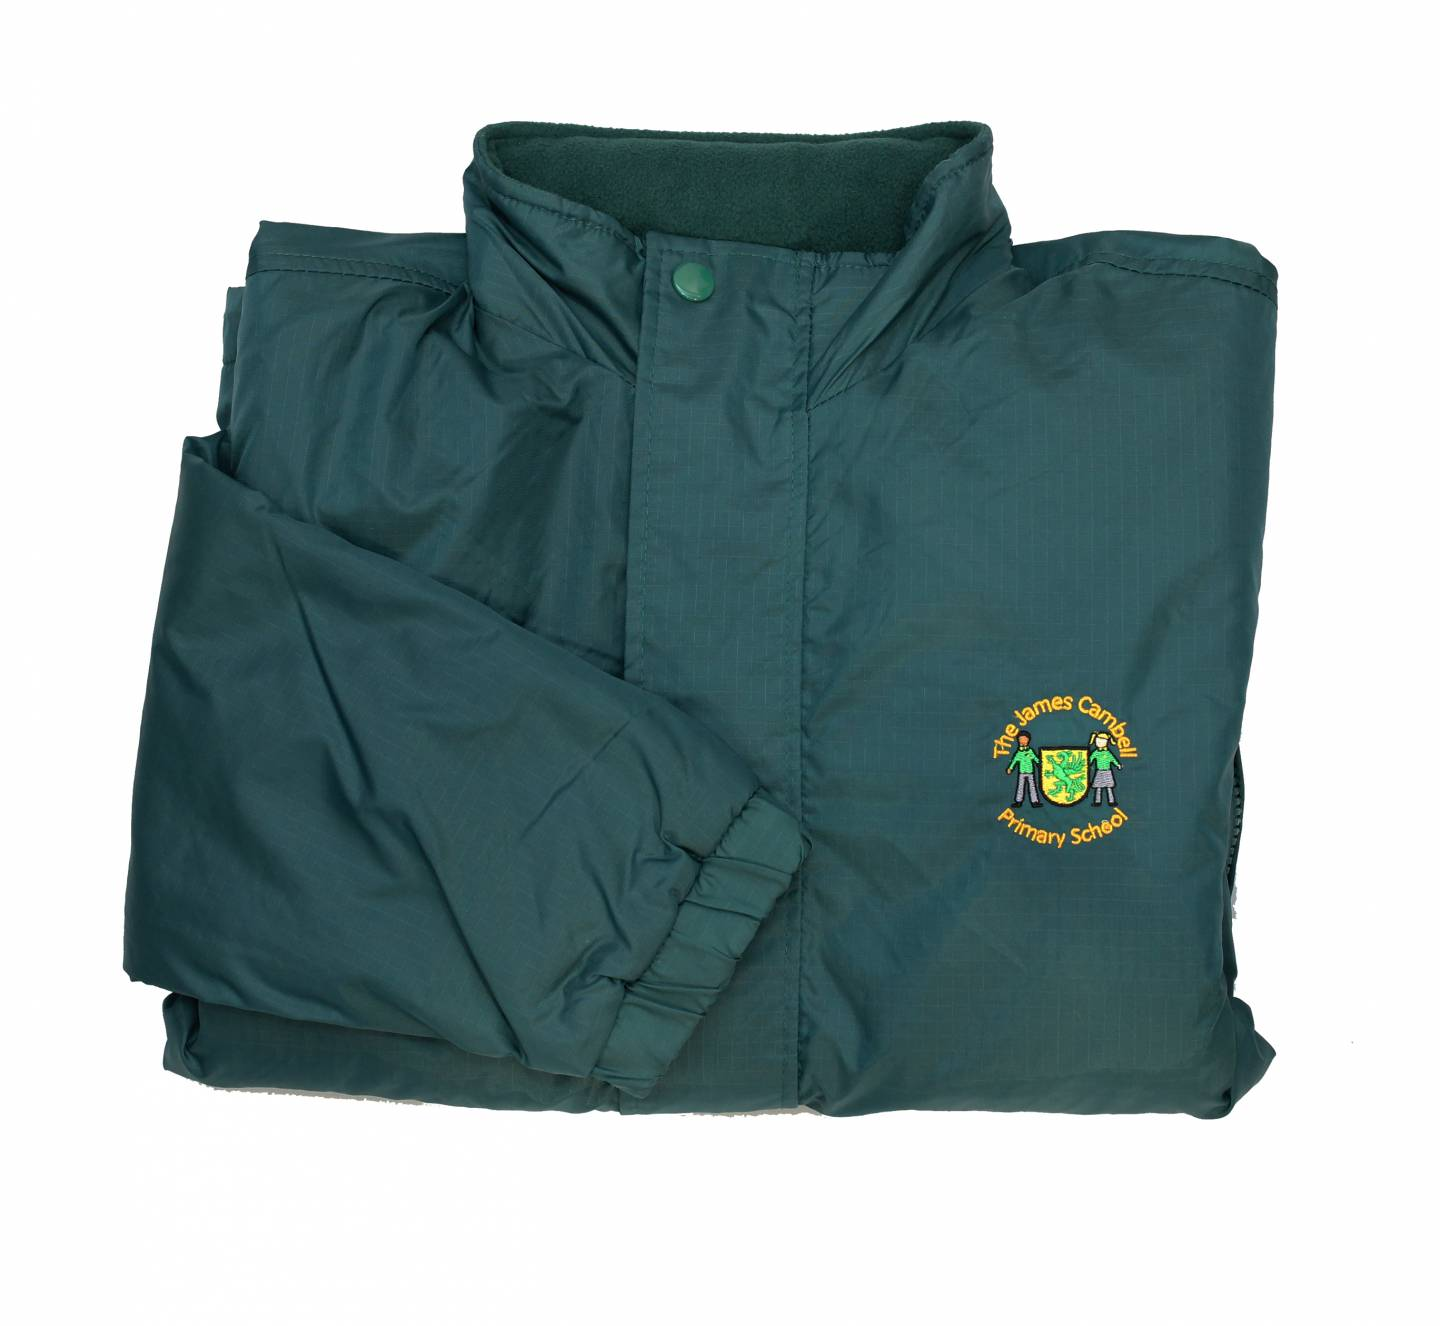 cbc8405c372c Castle Green | James Cambell Reversible Jacket